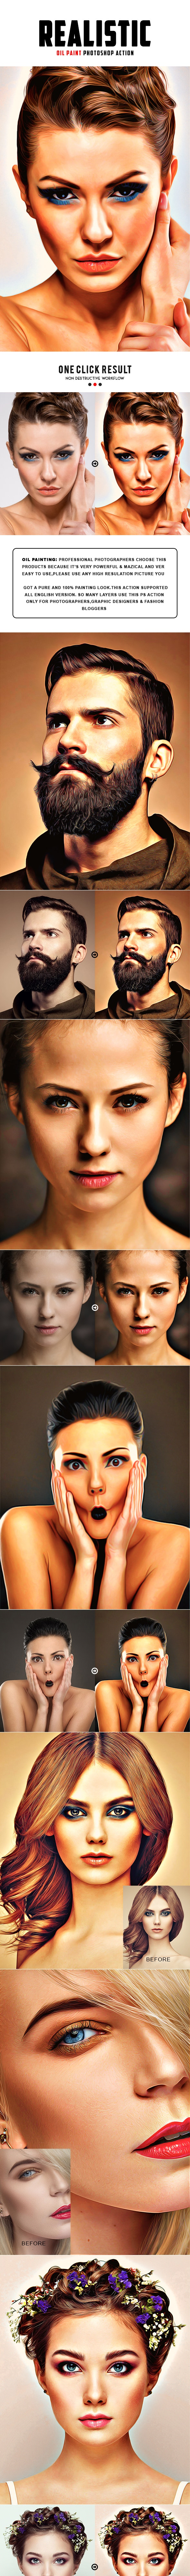 Realistic Oil Painting Photoshop Action - Photo Effects Actions